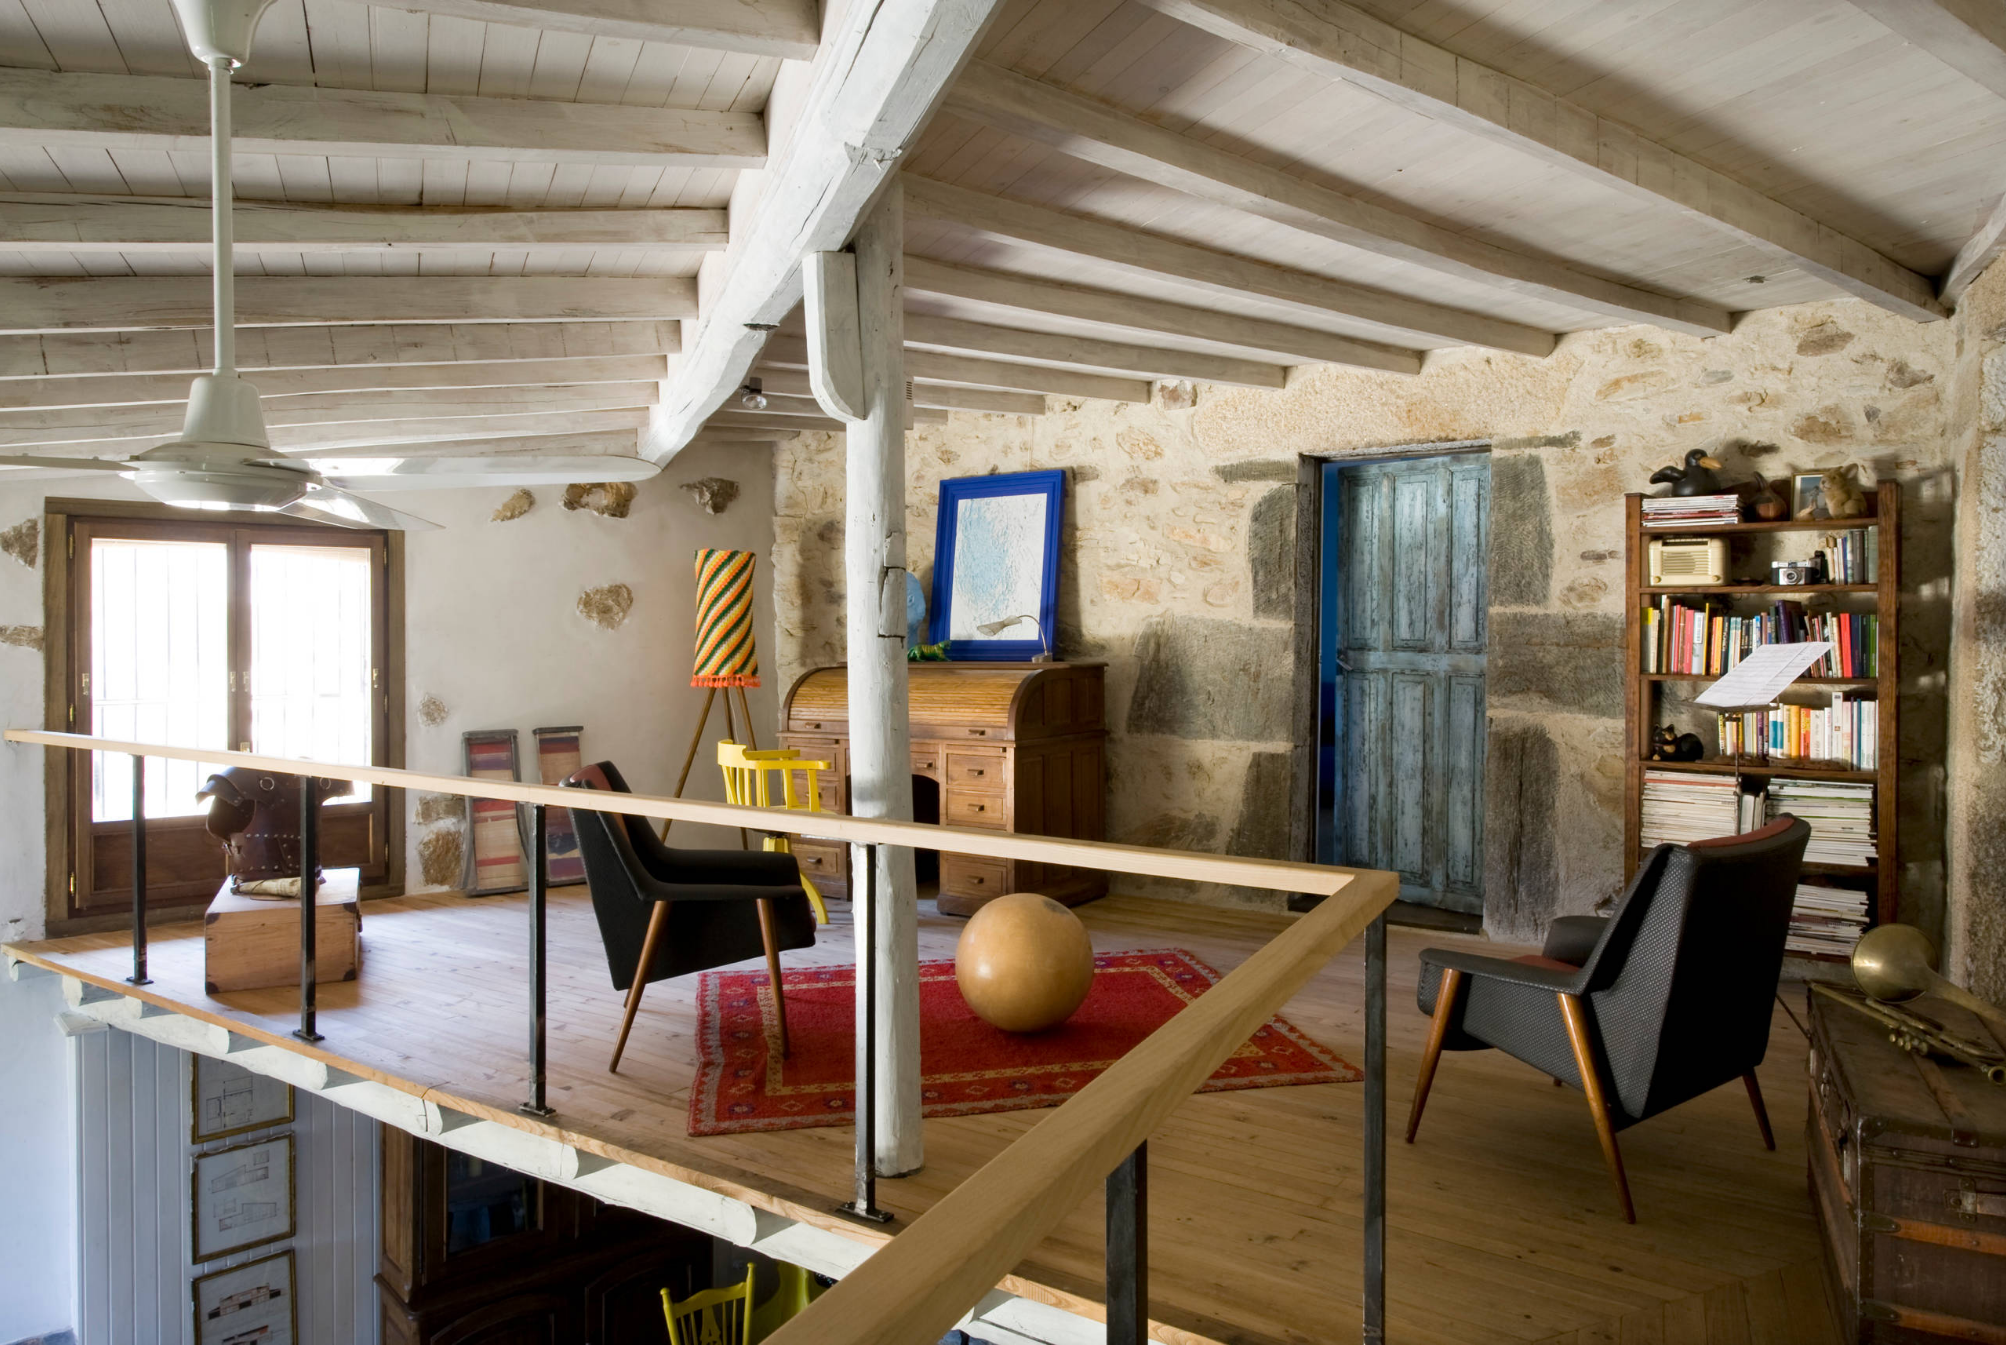 Houzz espa a casa gallega de vacaciones for Decoracion de viviendas interiores